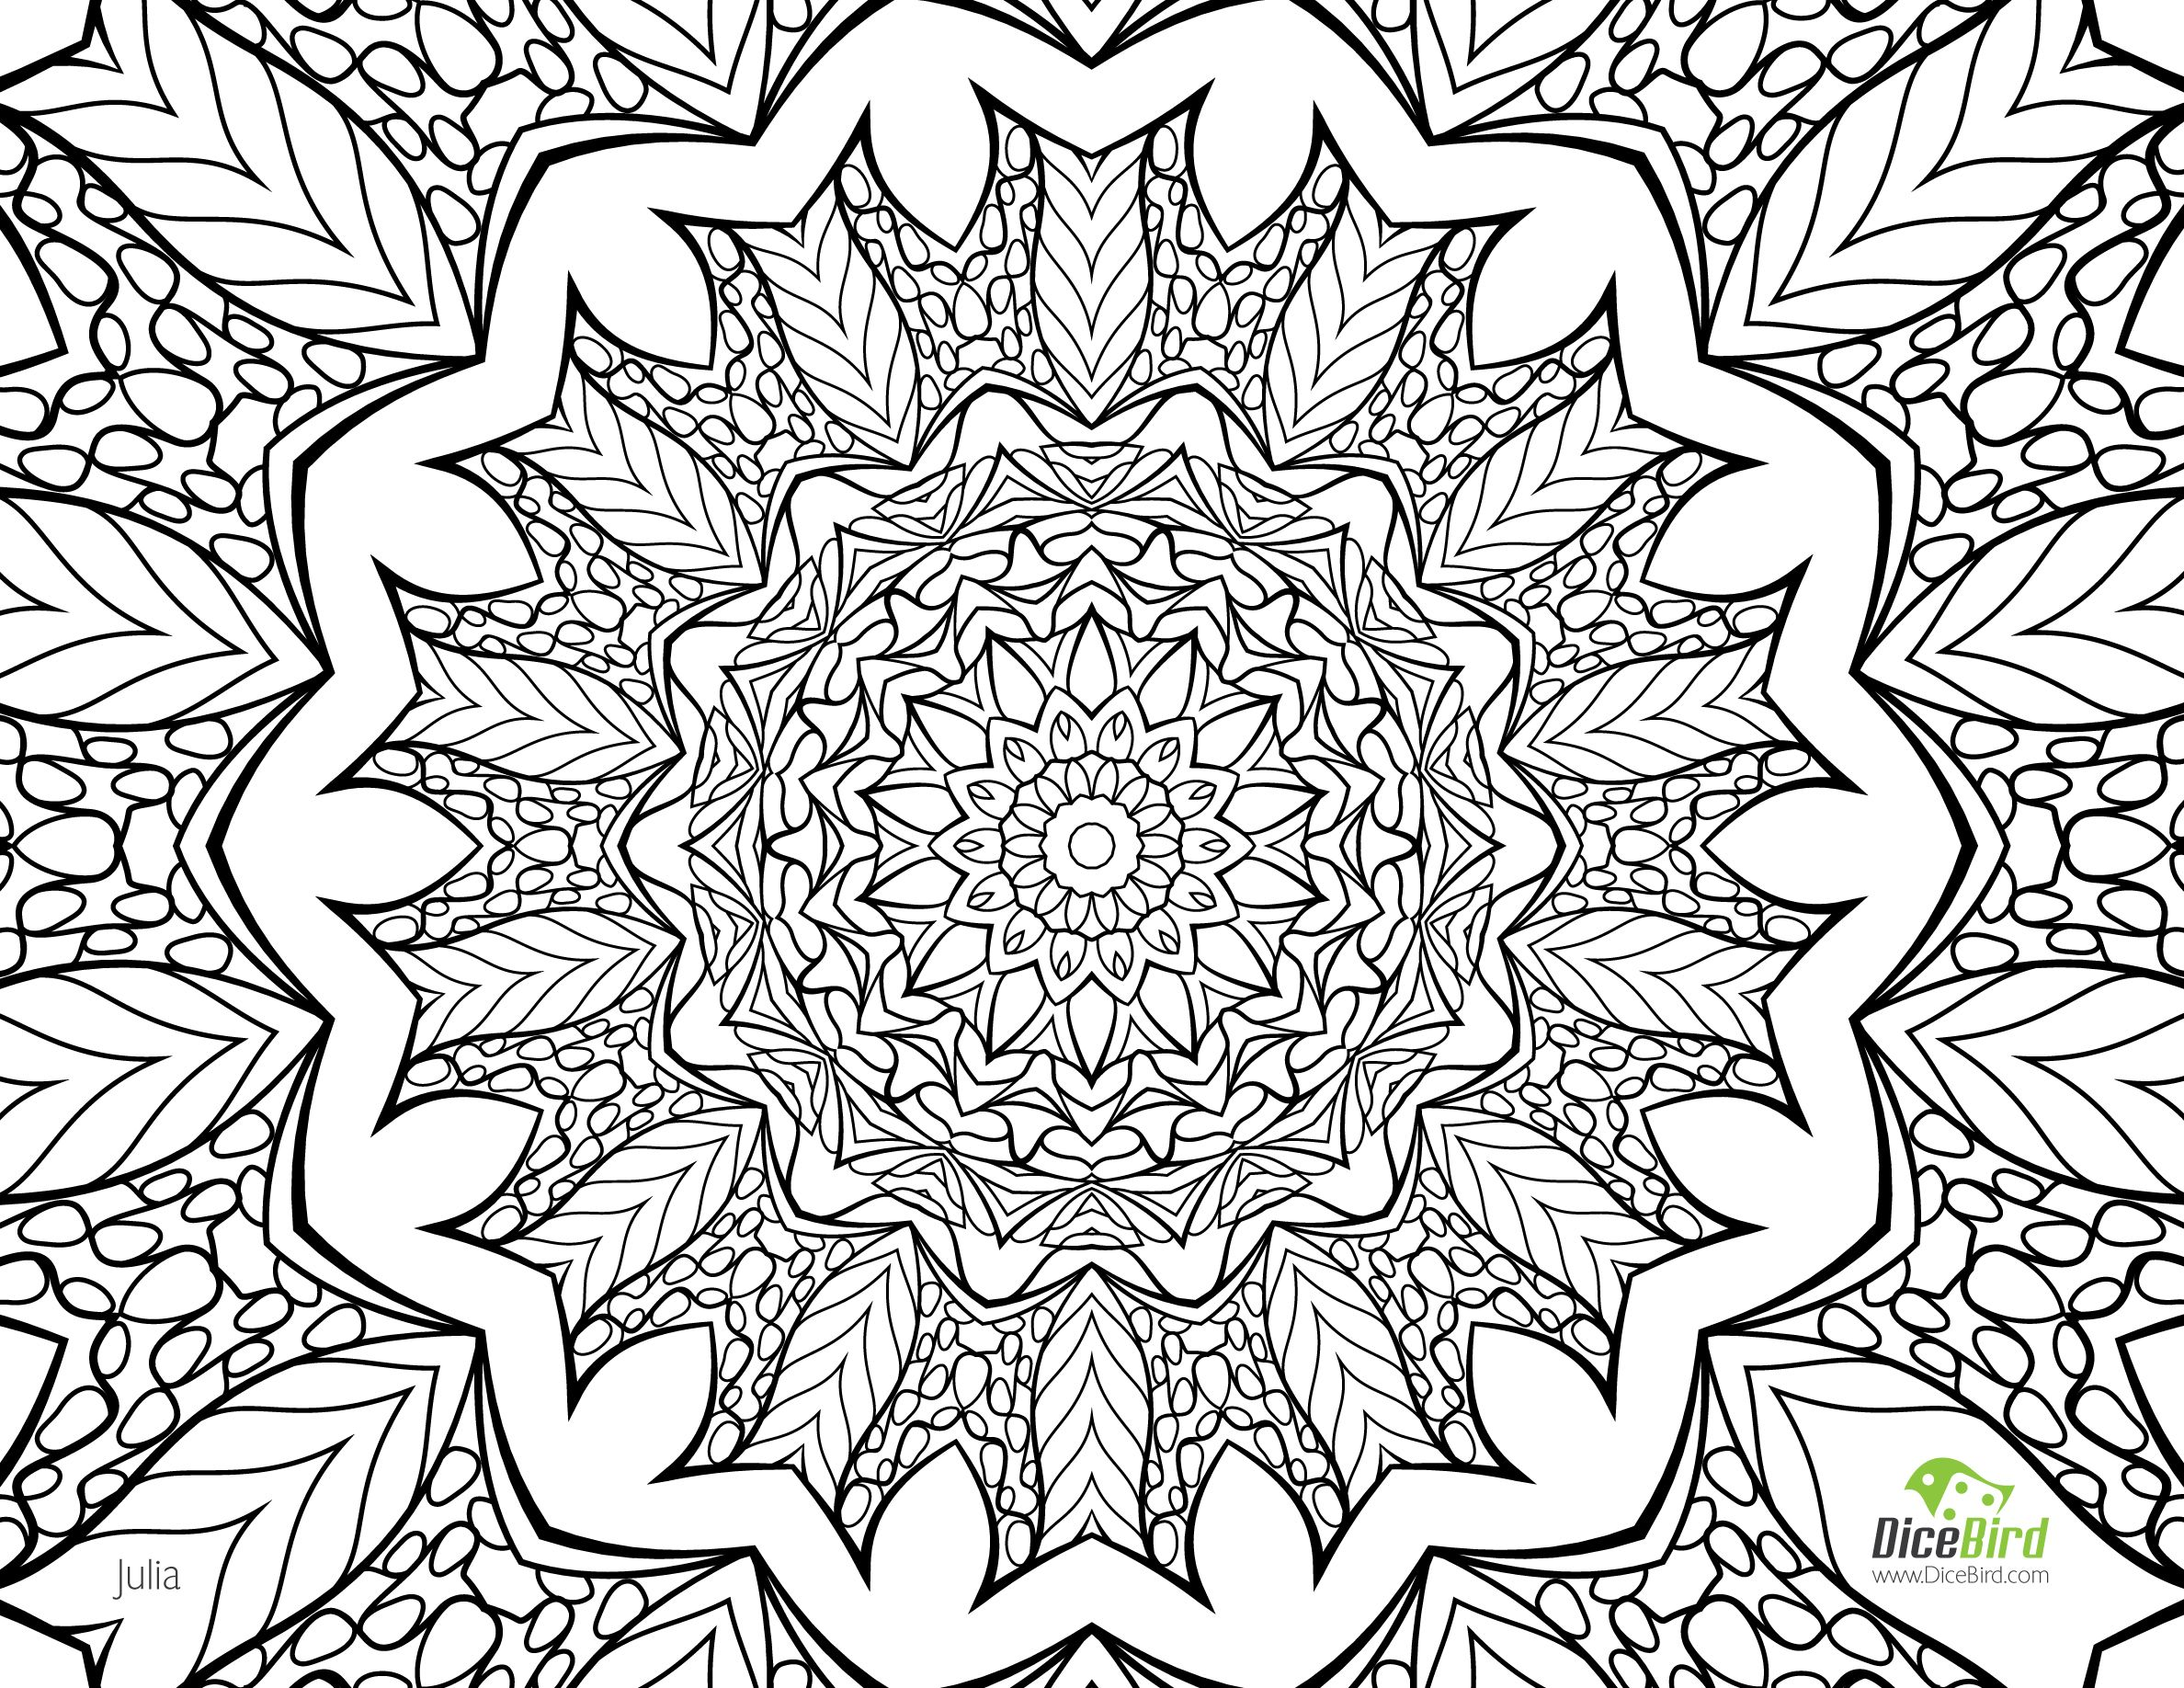 Colouring in for adults sheets - Julia Free Printable Coloring Pages For Adults Only